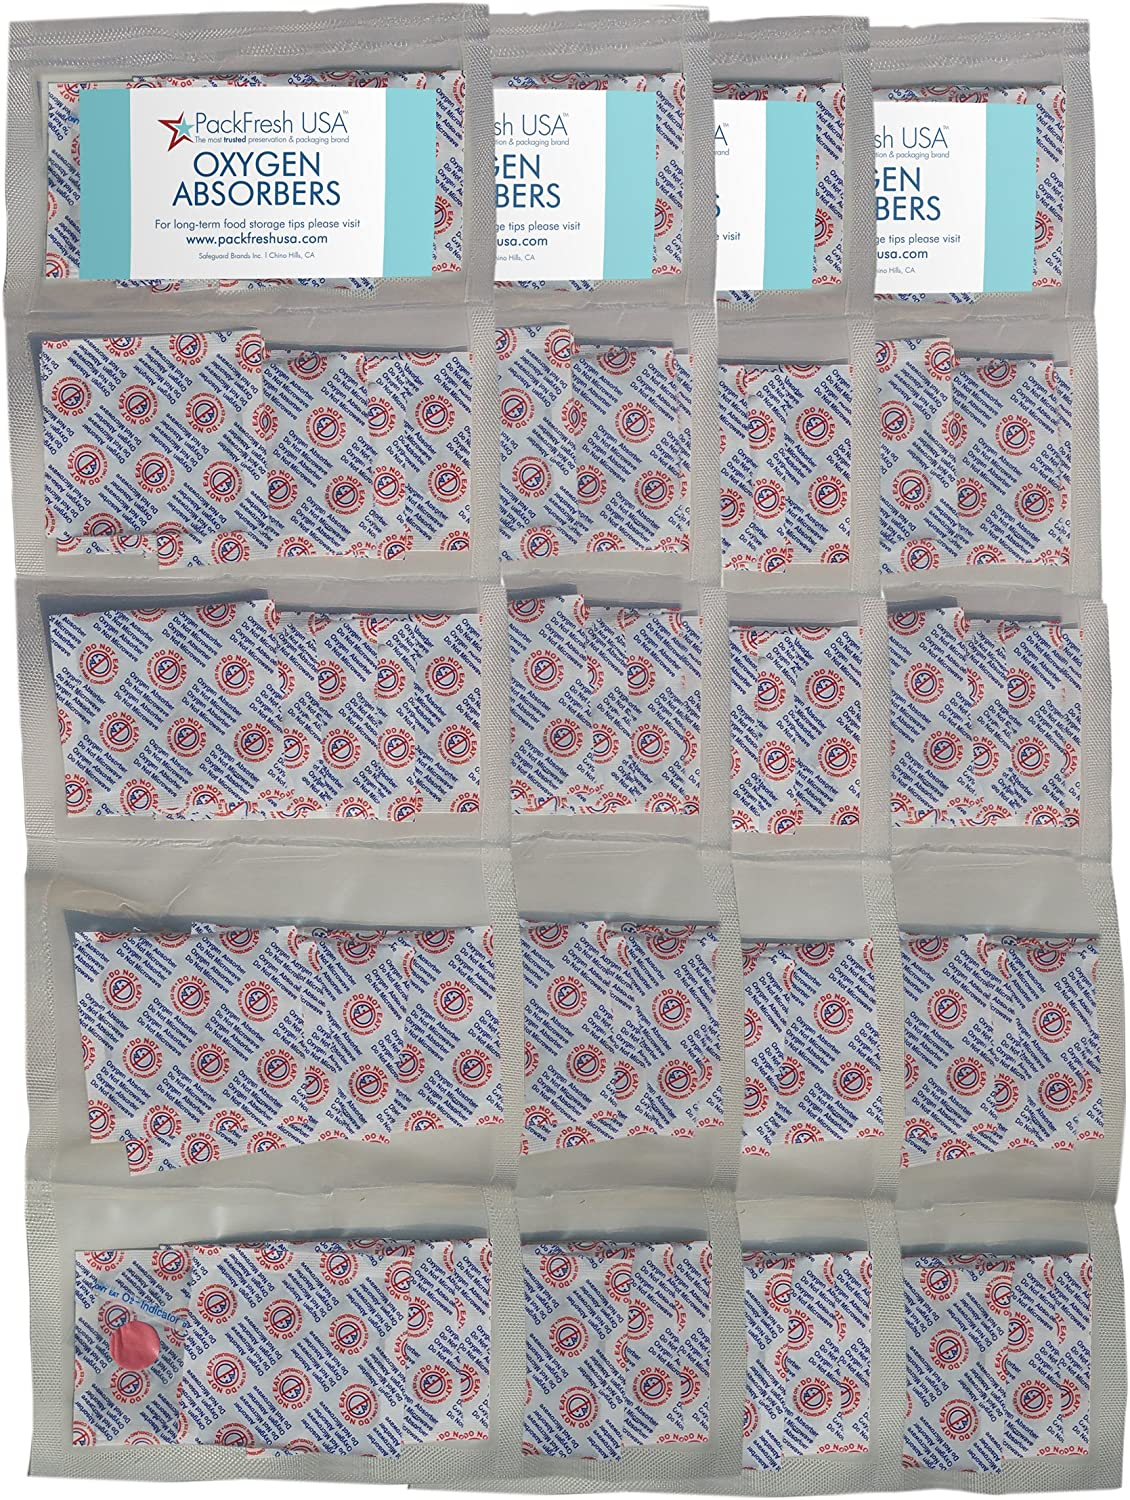 300cc Oxygen Absorber Compartment Packs (100, in 20 Compartments) with PackFreshUSA LTFS Guide